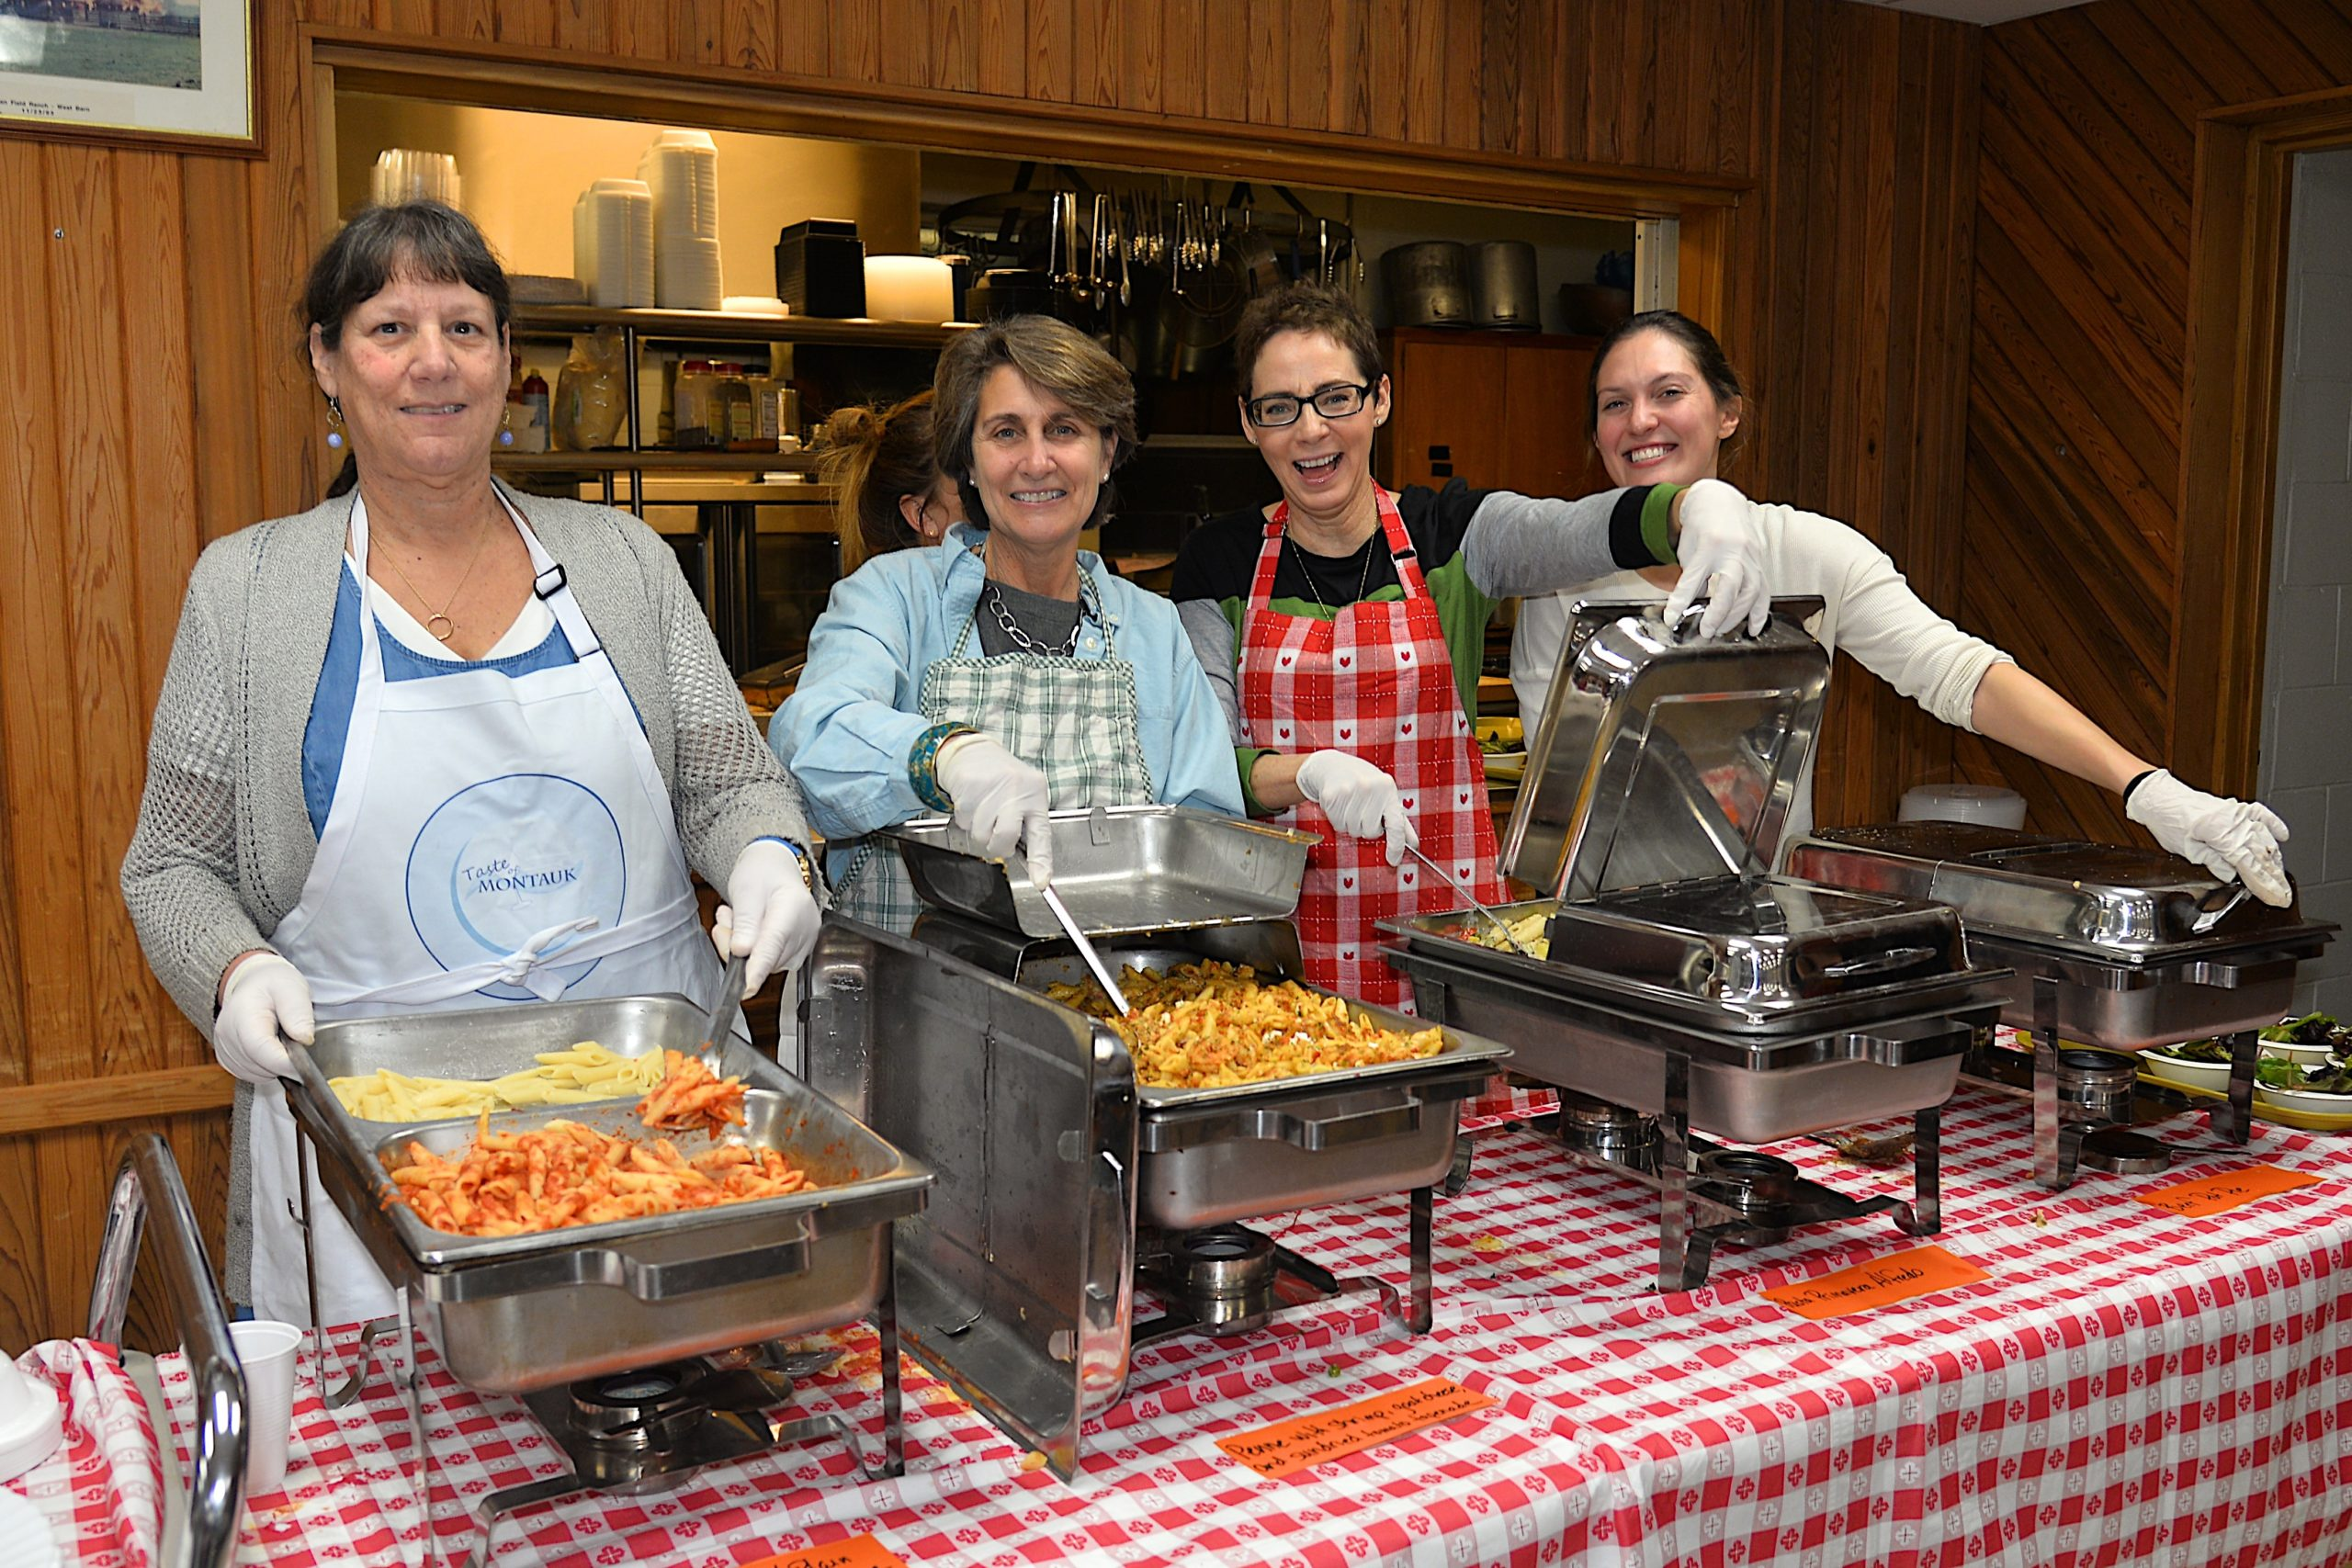 A pasta dinner fundraiser took place at the Montauk firehouse on Saturday to benefit the Robert R. Fisher scholarship fund. Dishing out the pasta were, from left, Donna DiPaolo, Judith Pfister, Patricia Byrne and Nicole George. KYRIL BROMLEY